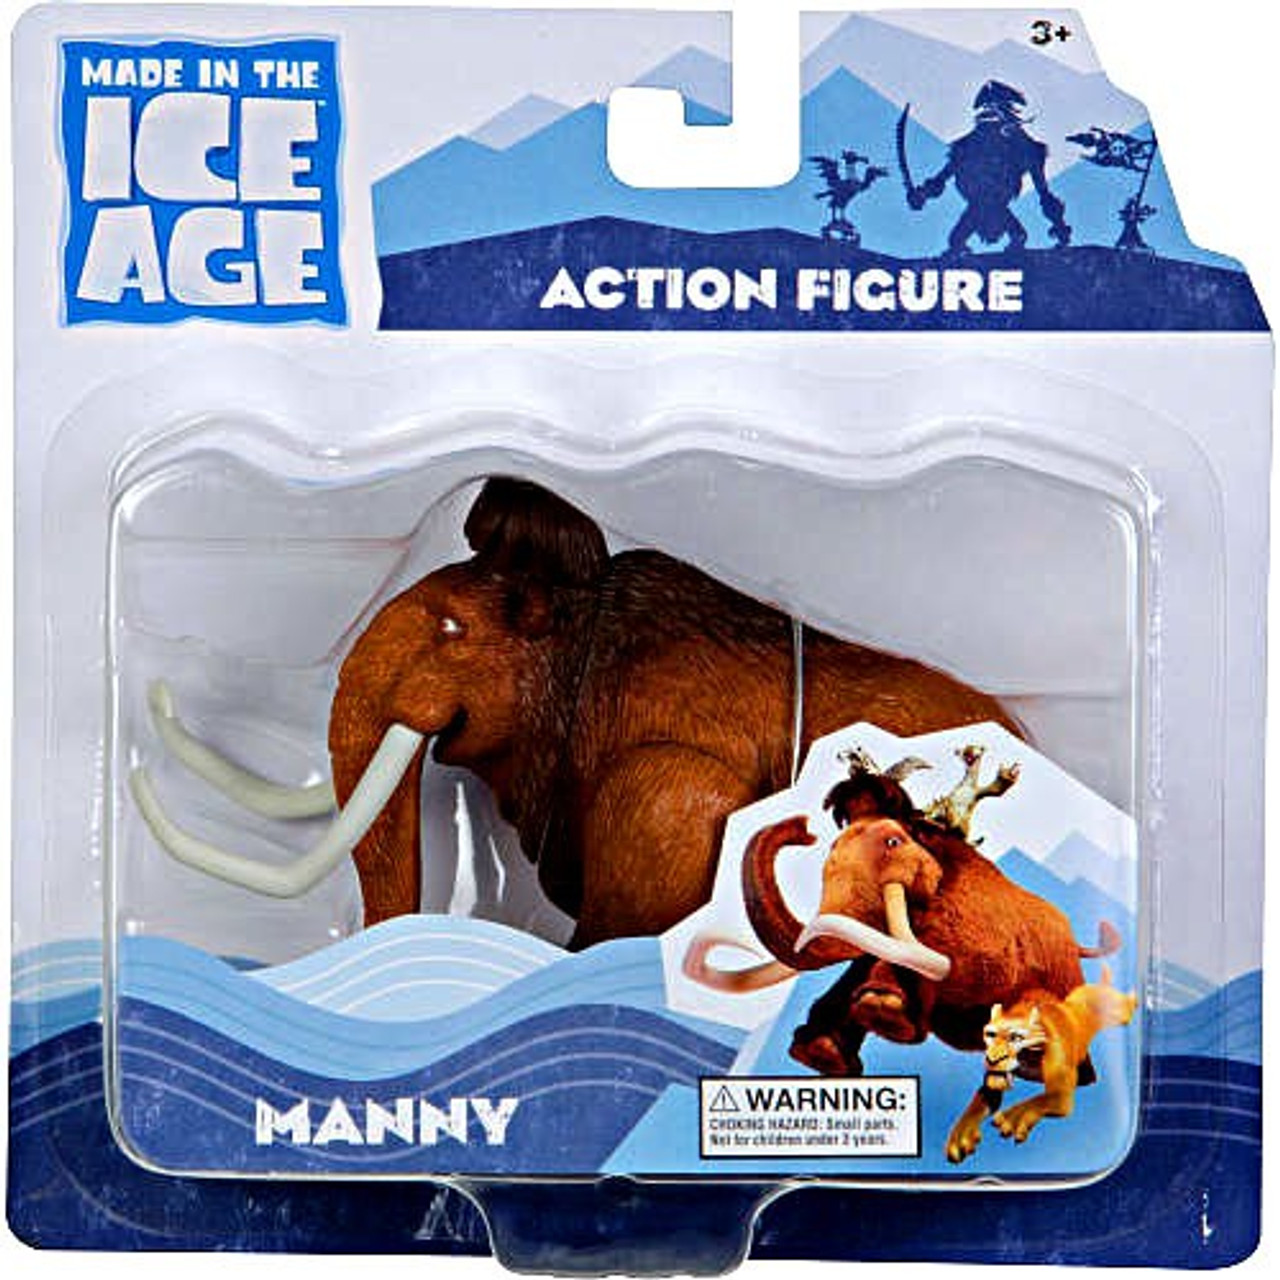 Toys From Ice Age 1 : Ice age continental drift manny action figure tpf toys